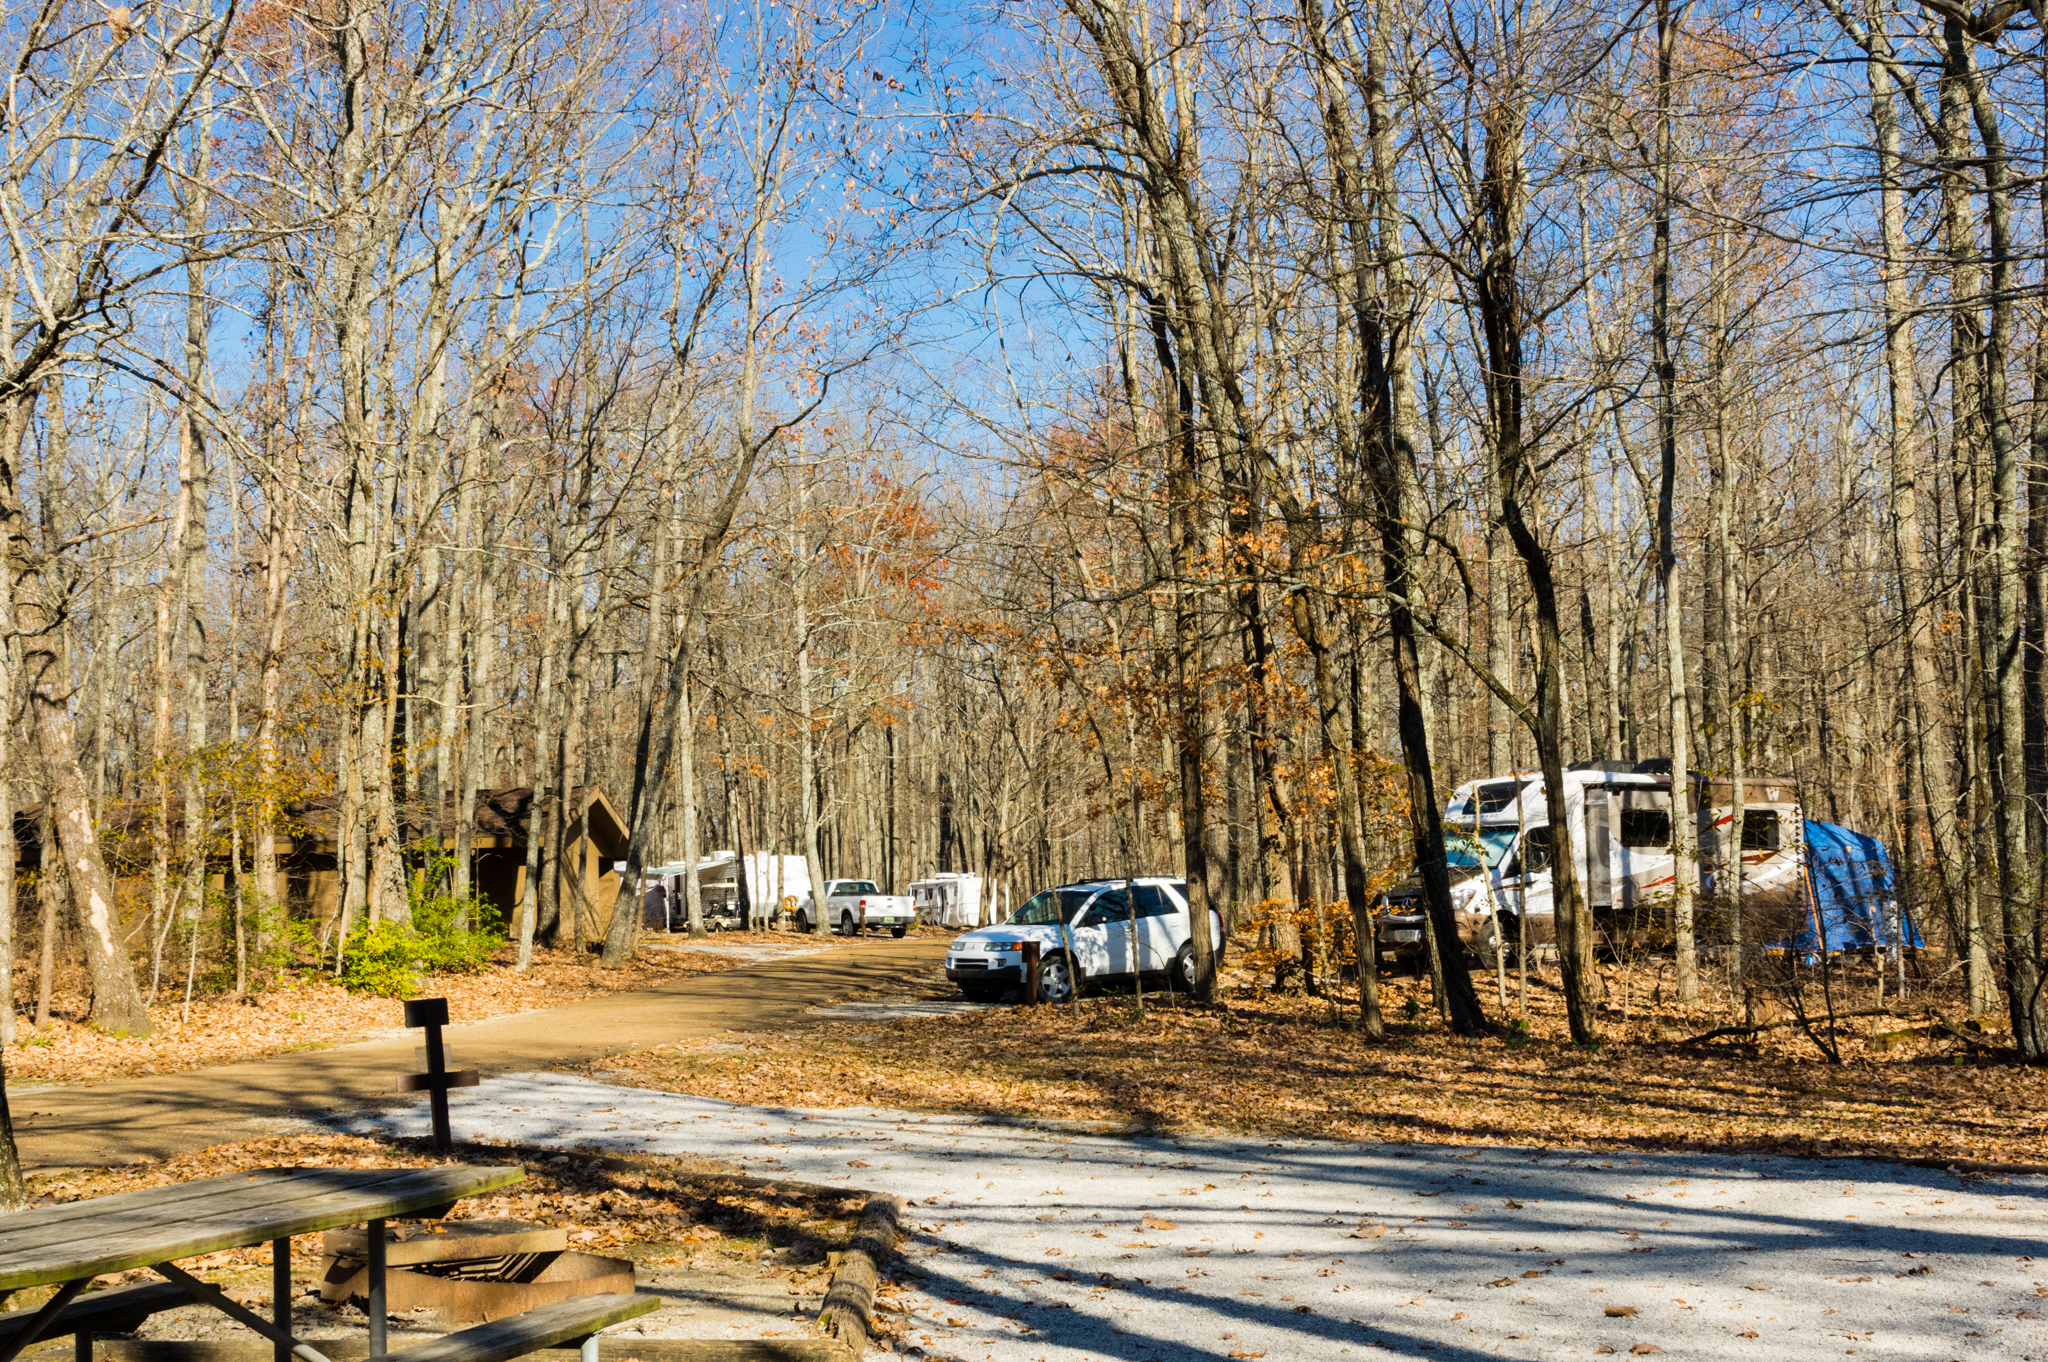 This is a photo of the RV Park on Monte Sano mountain